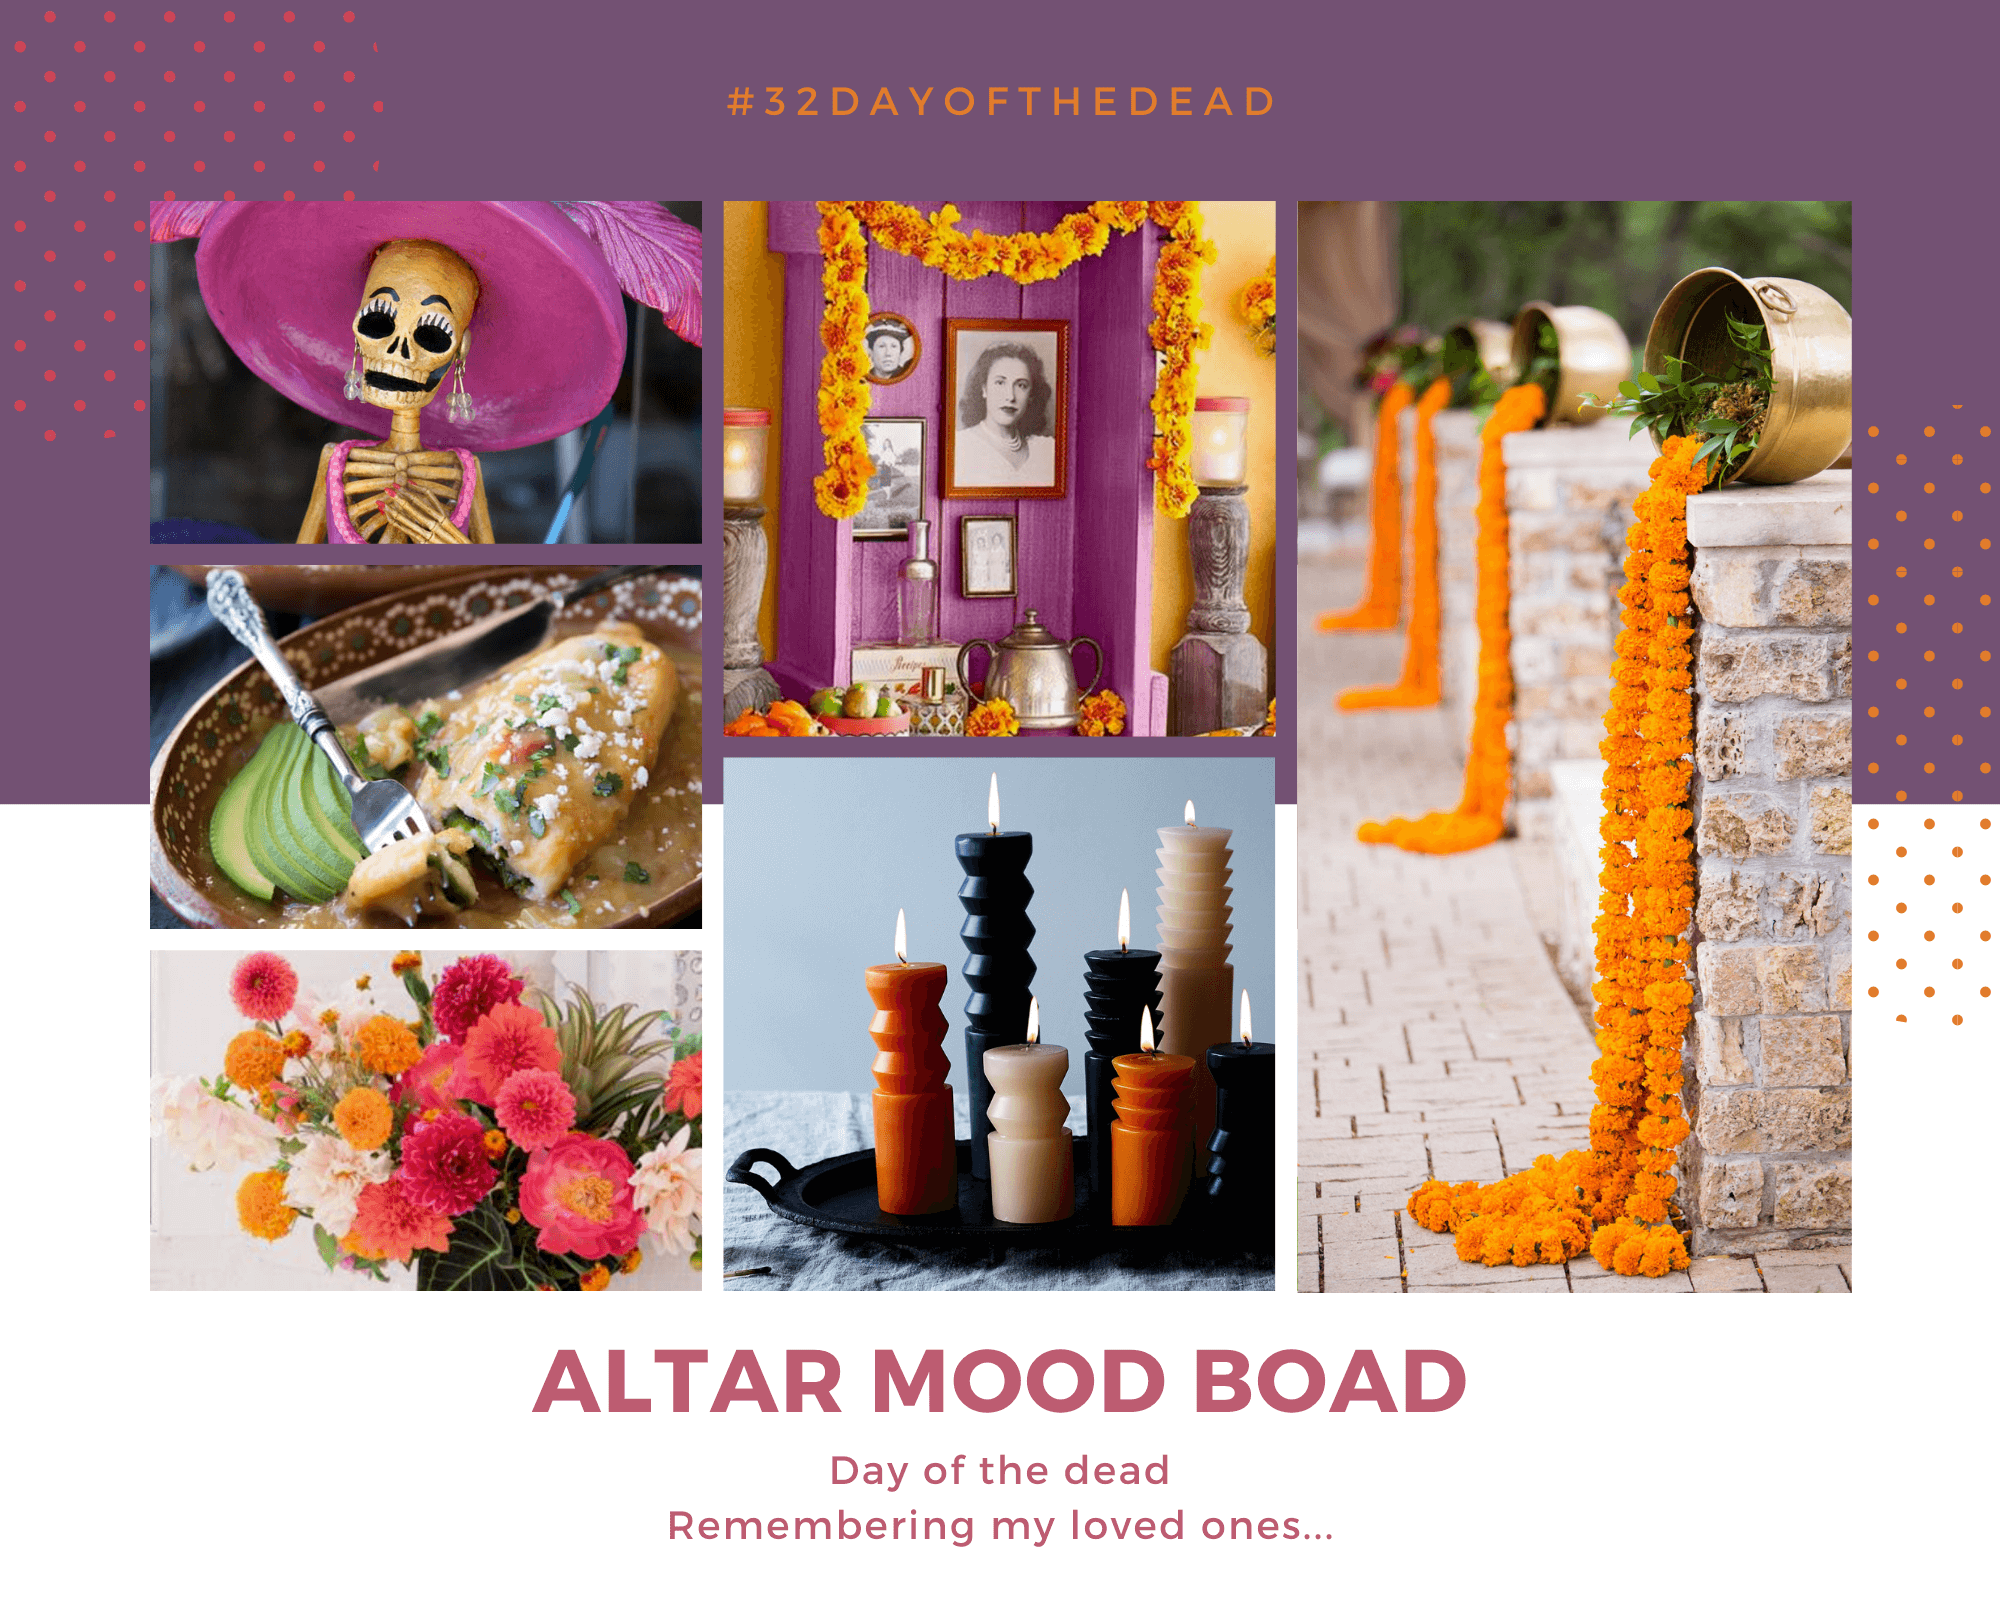 Day of the dead altar mood board